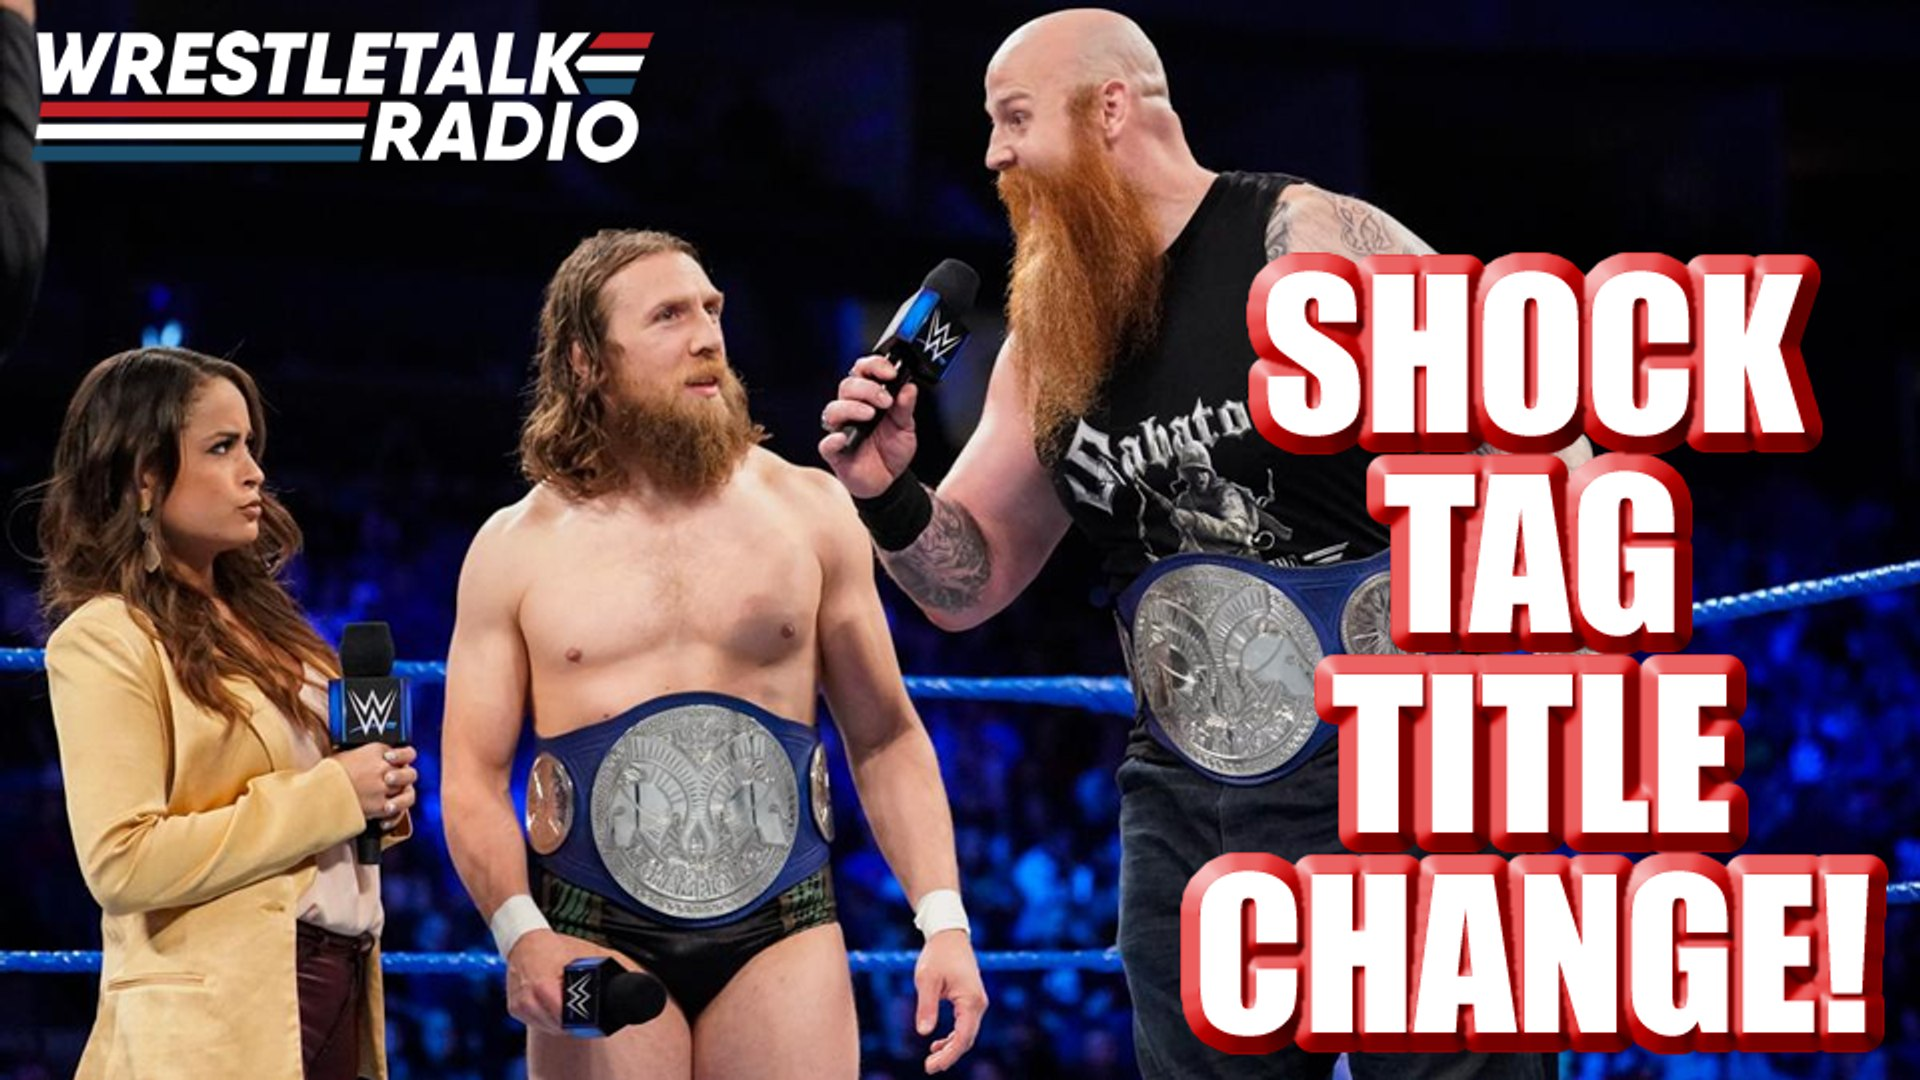 MASSIVE WWE Tag Title CHANGE!! Major Star Makes In-Ring Return!! SmackDown Star Debuts for Other Bra